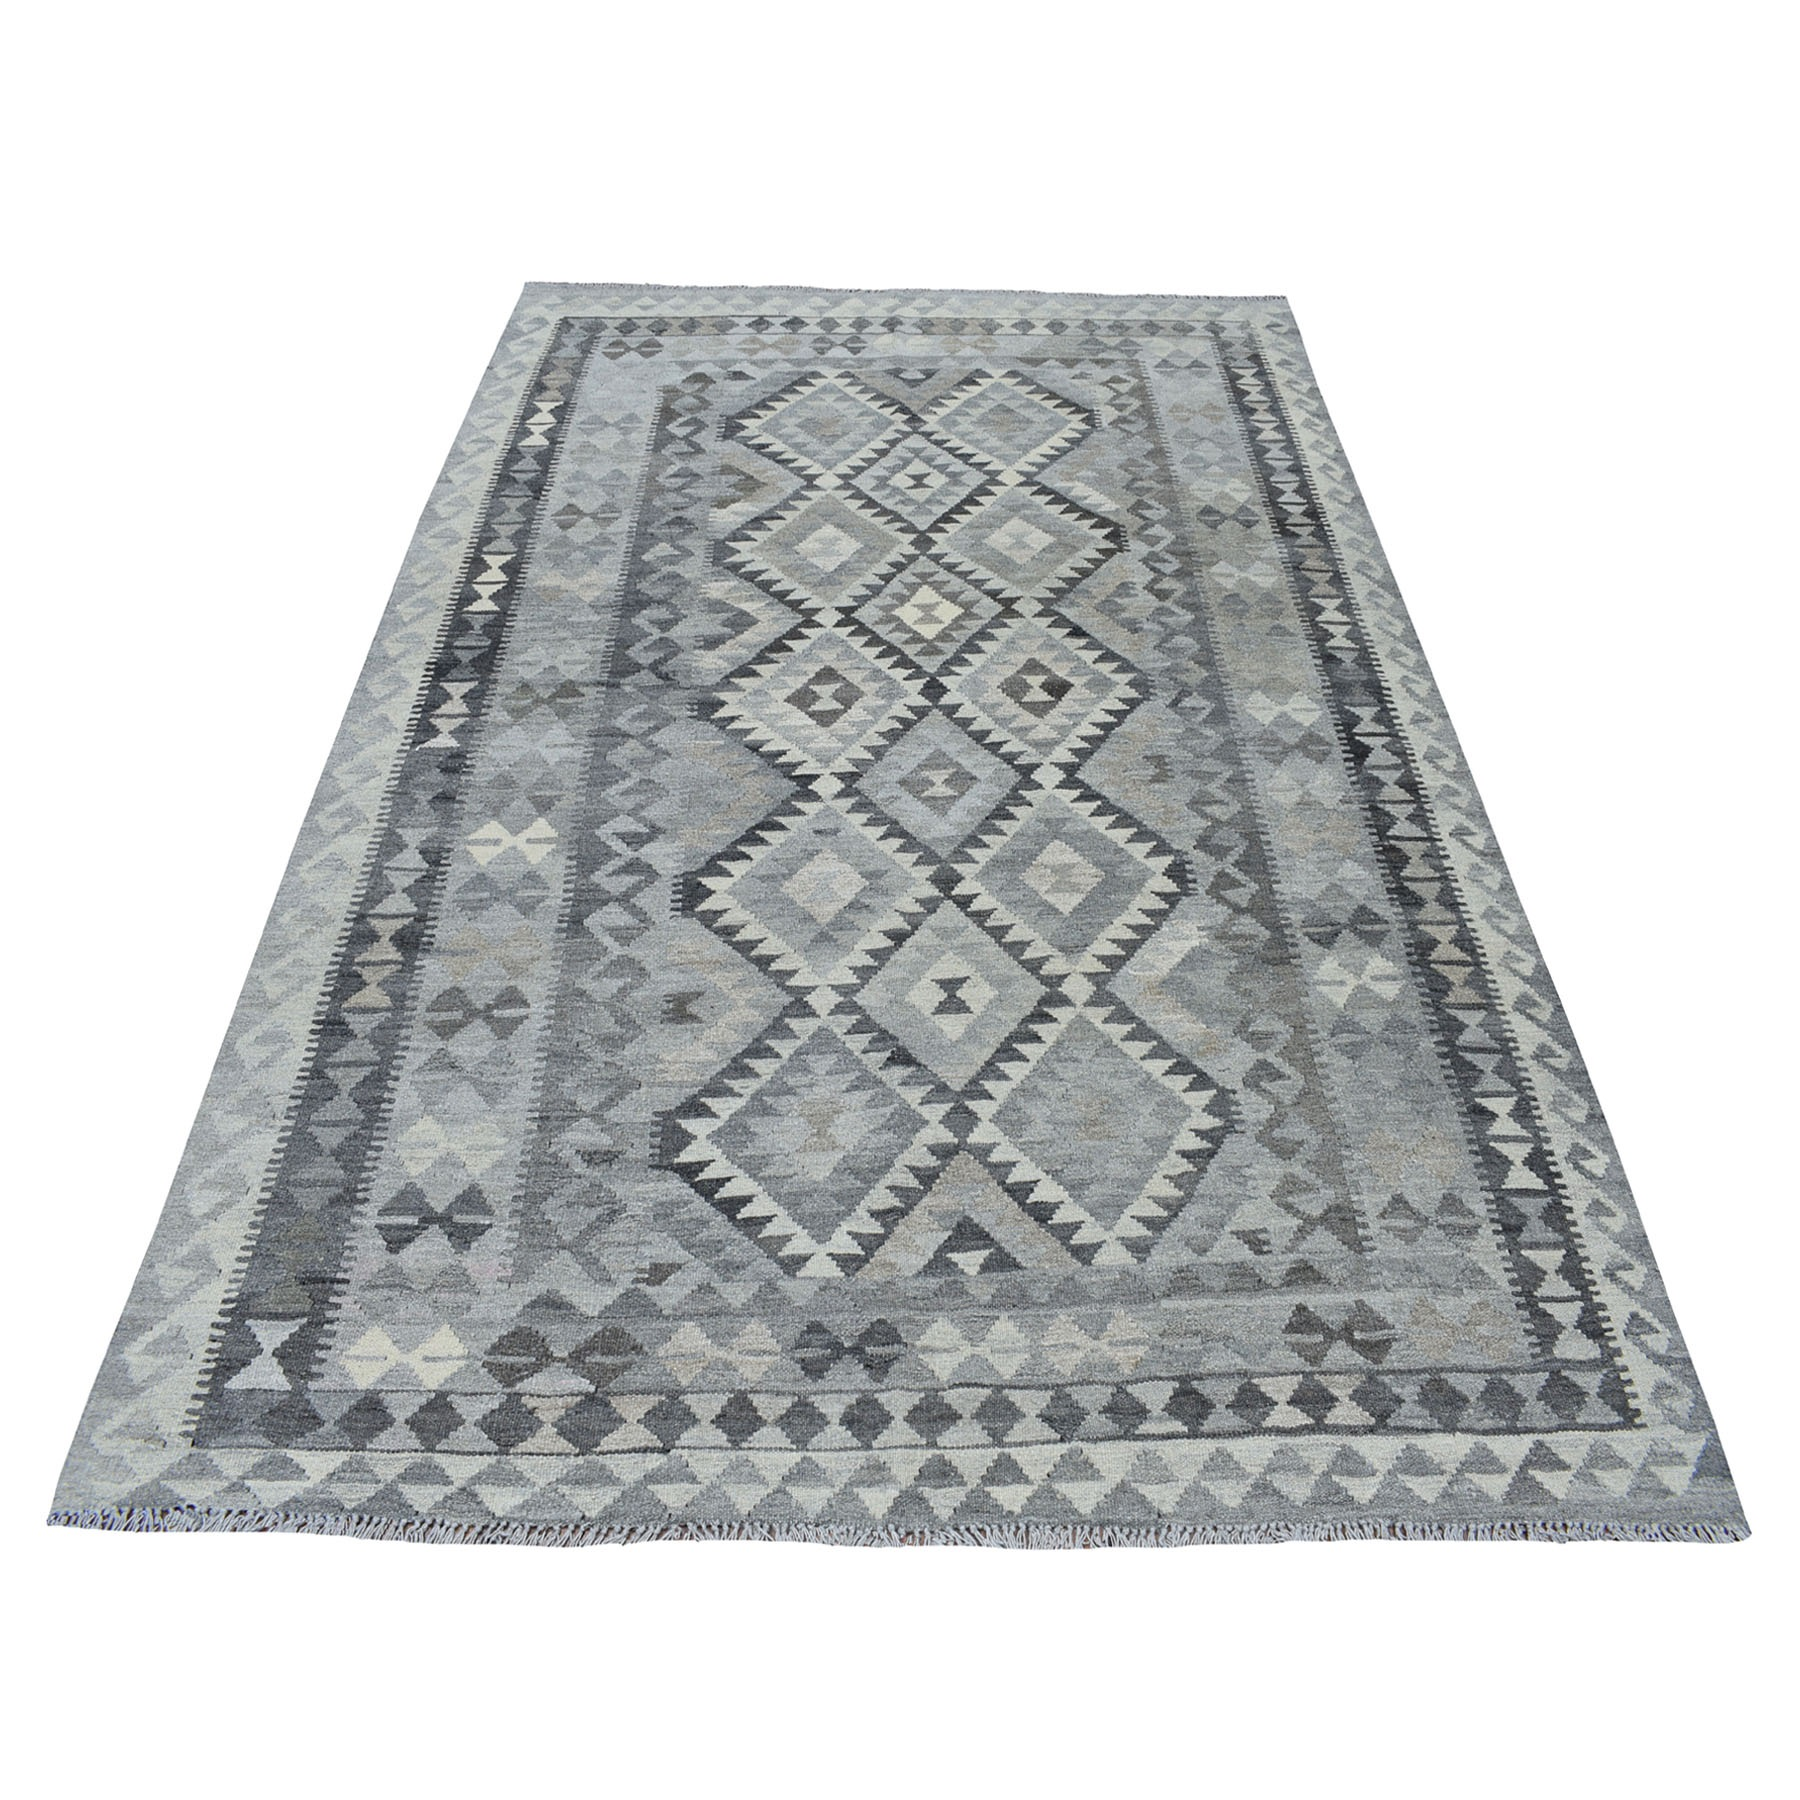 "5'9""x8'1"" Undyed Natural Wool Afghan Kilim Reversible Hand Woven Oriental Rug"